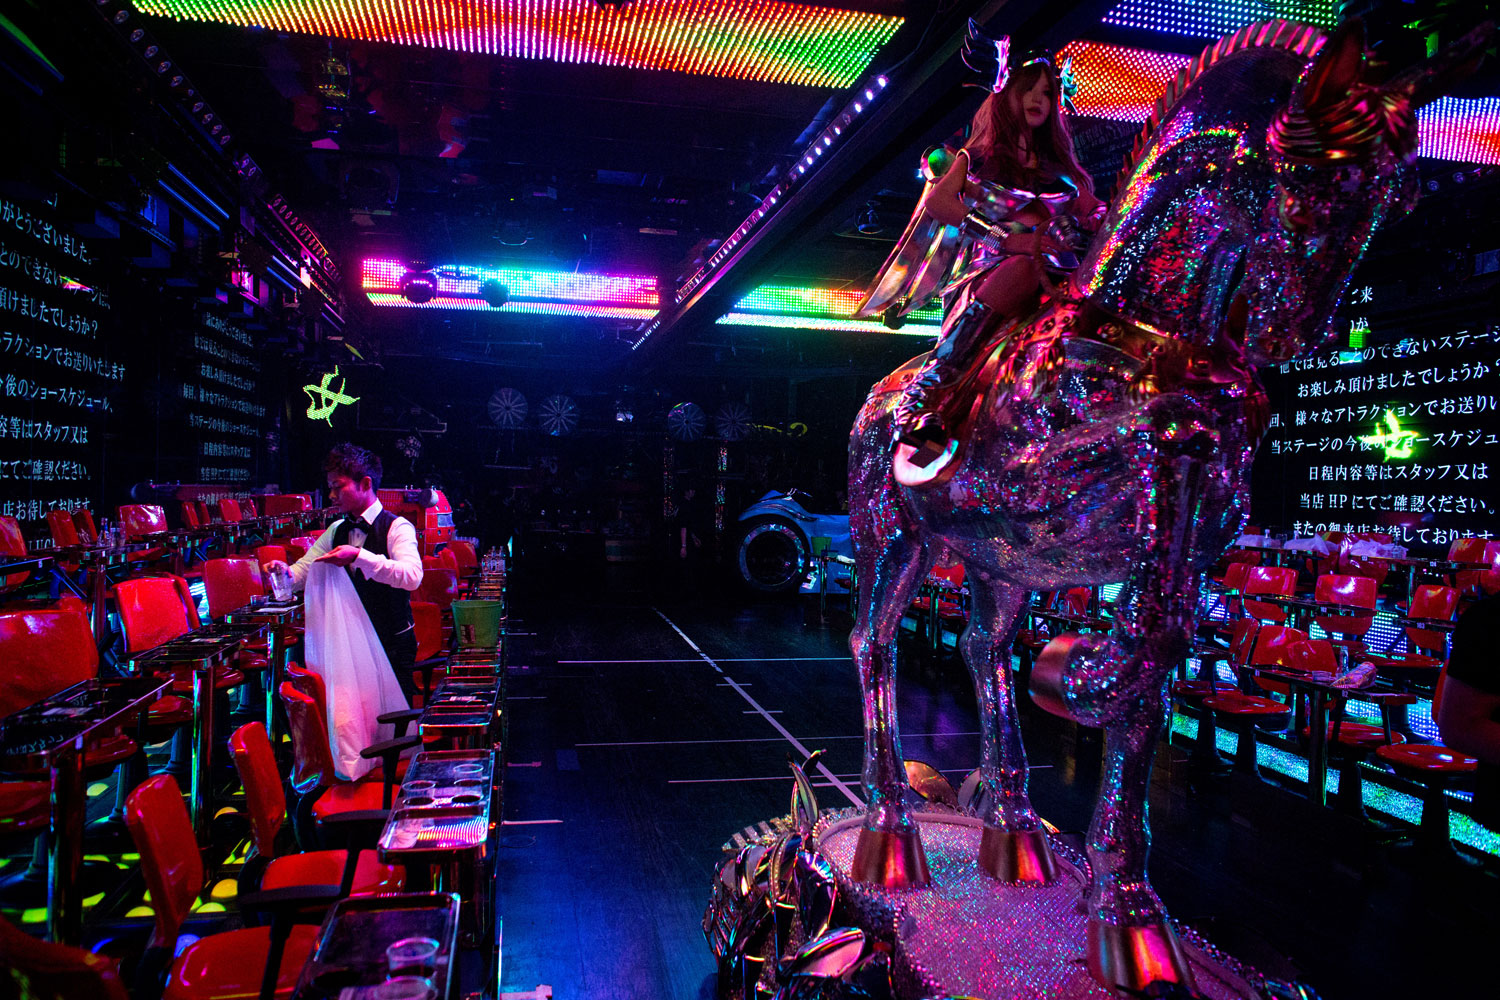 A man cleans up the stage after a show as a large robotic horse is moved back into position after a show at The Robot Restaurant on June 29, 2014 in Tokyo.